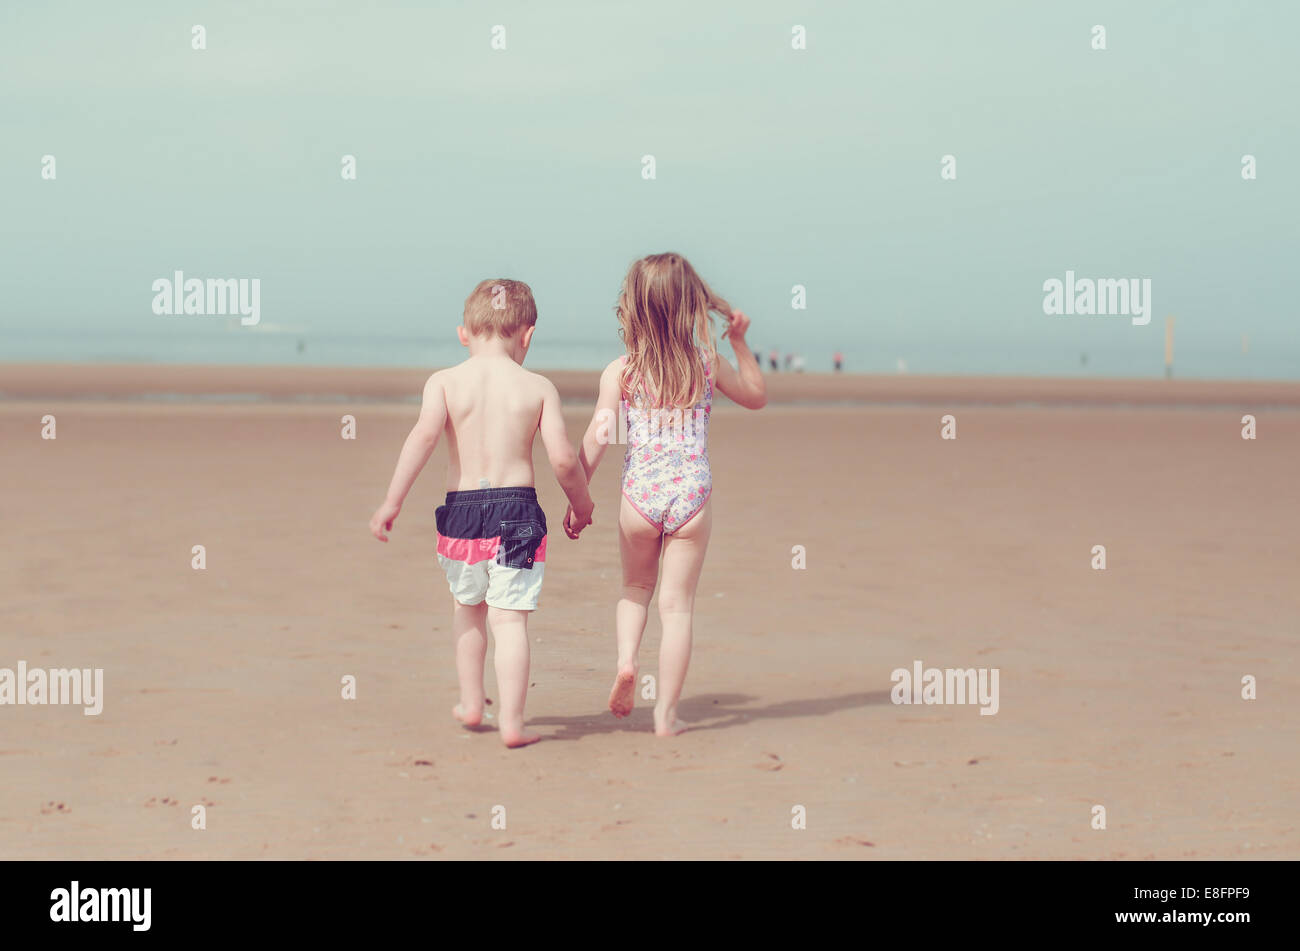 Girl and boy holding hands and walking on beach Stock Photo